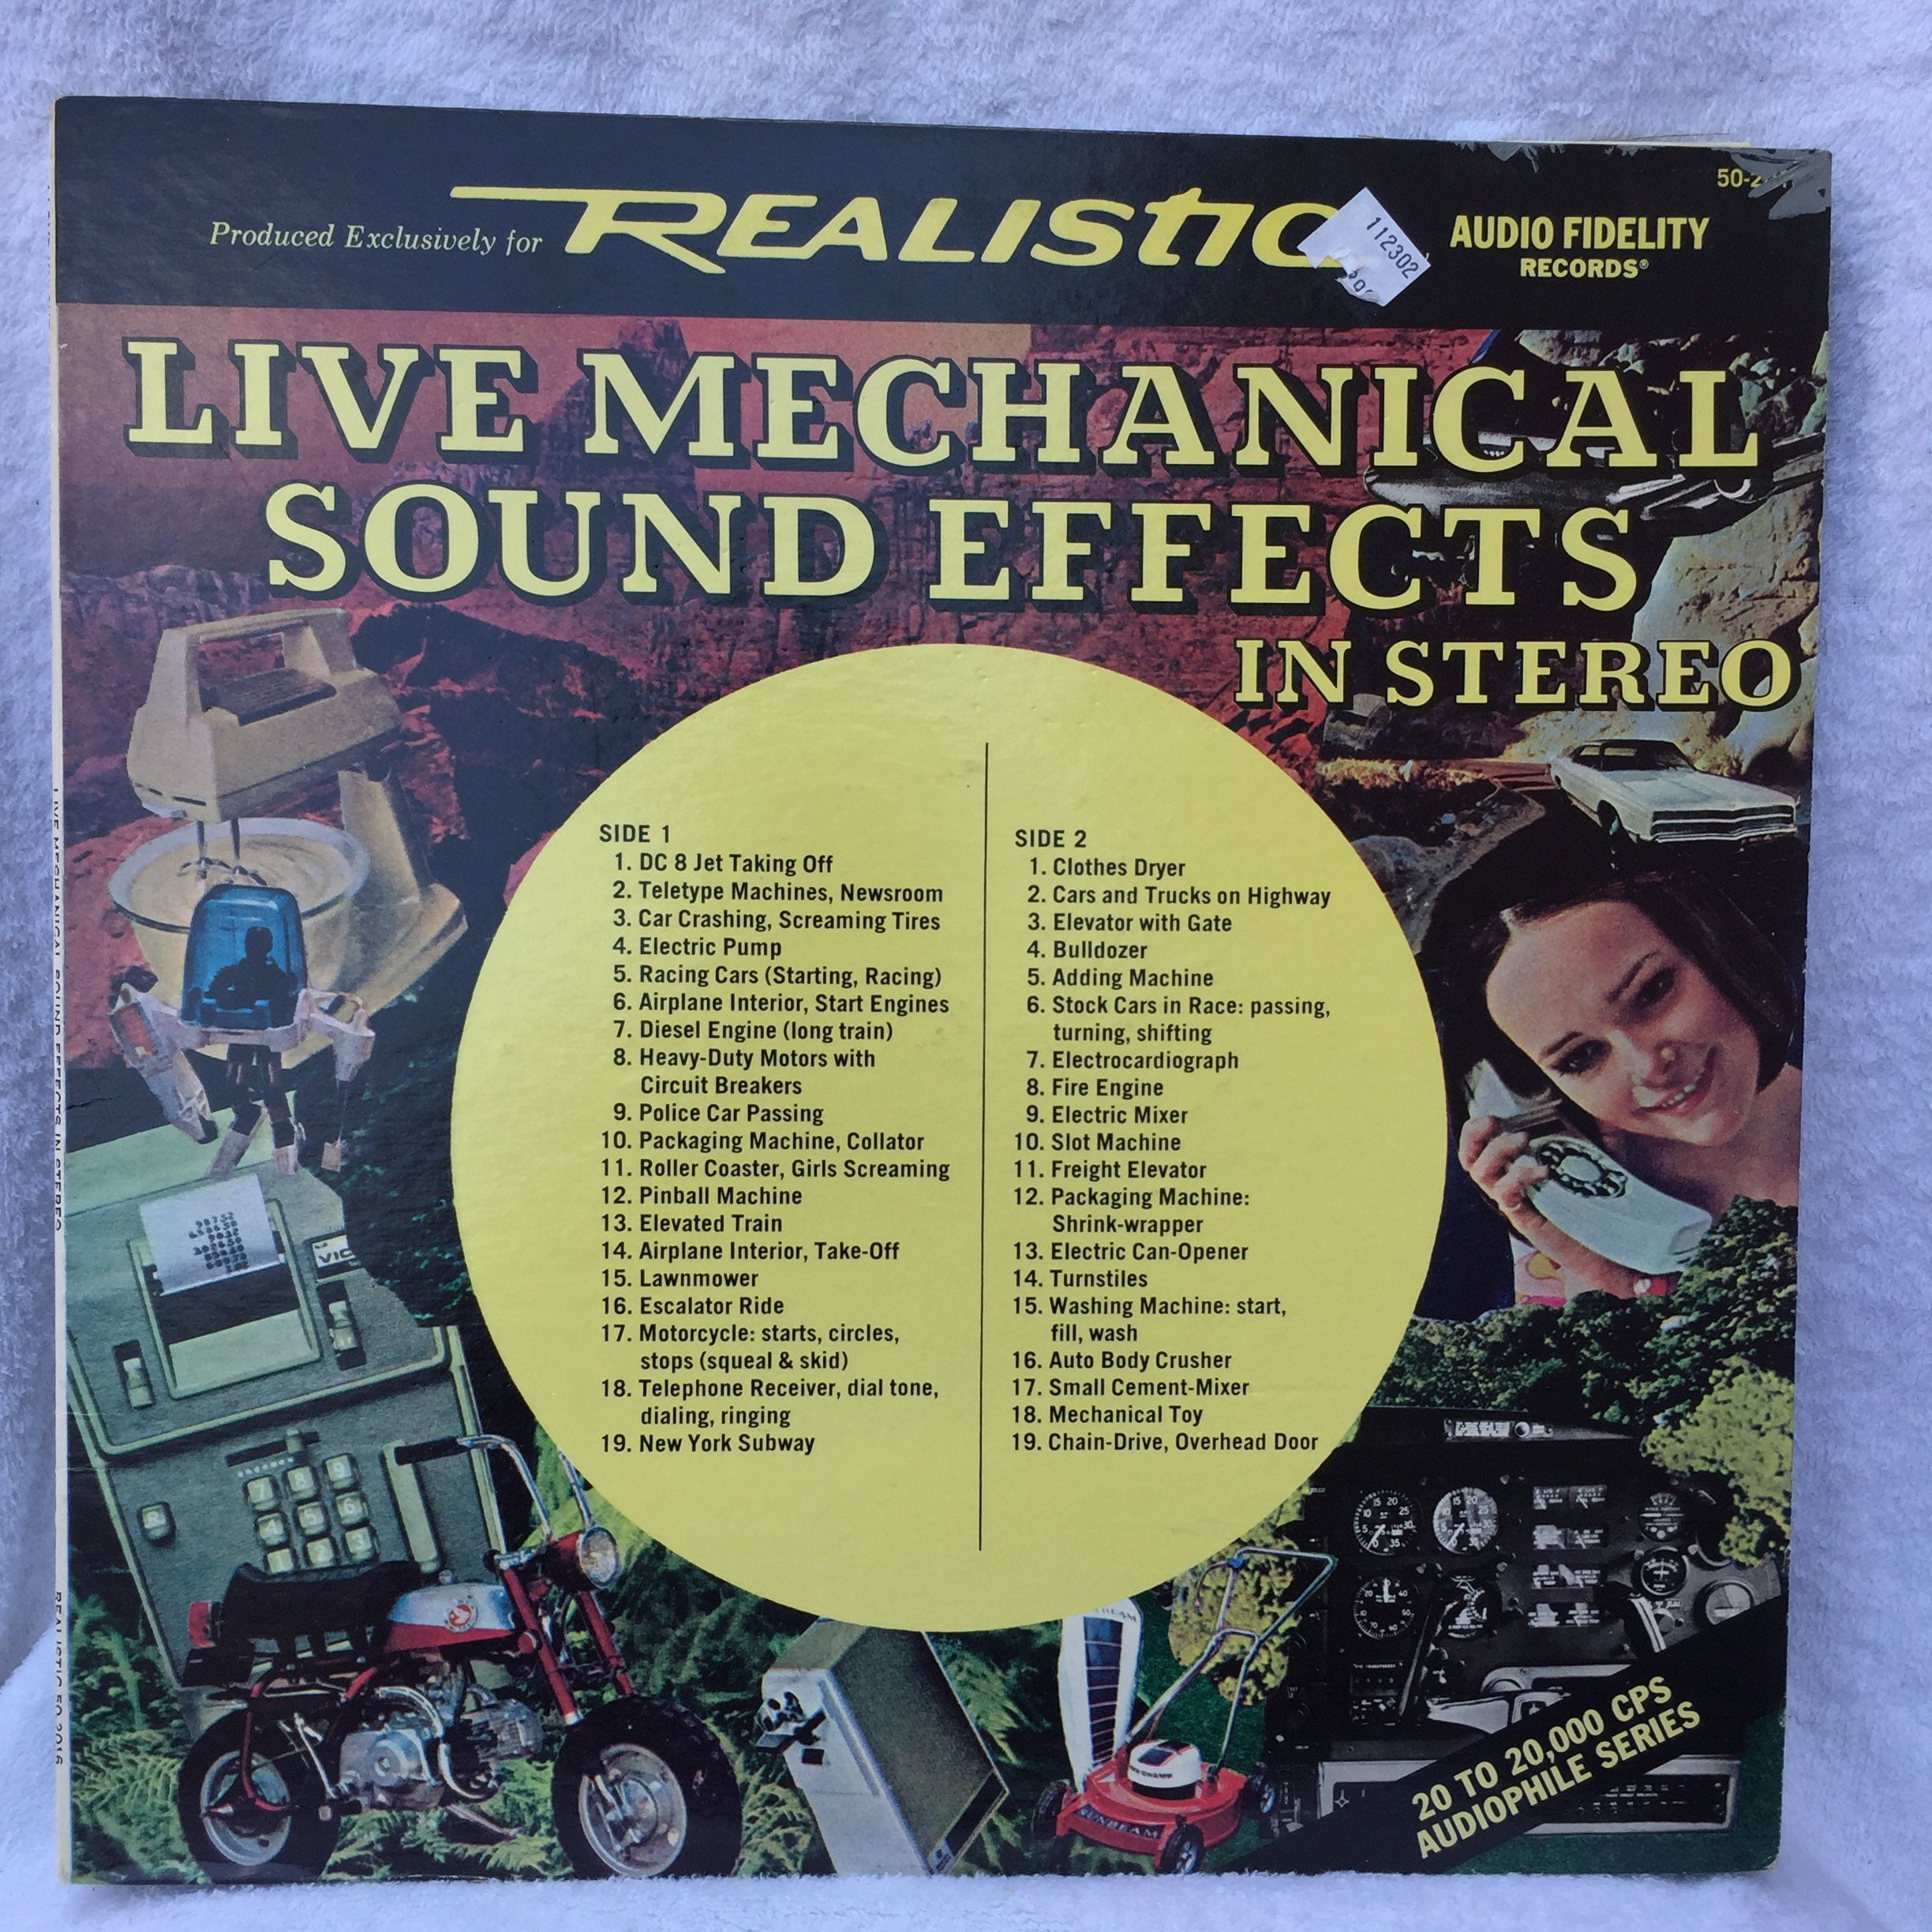 Live Mechanical Sound Effects Vinly LP Movies audiophile Fire engine Roller  coaster